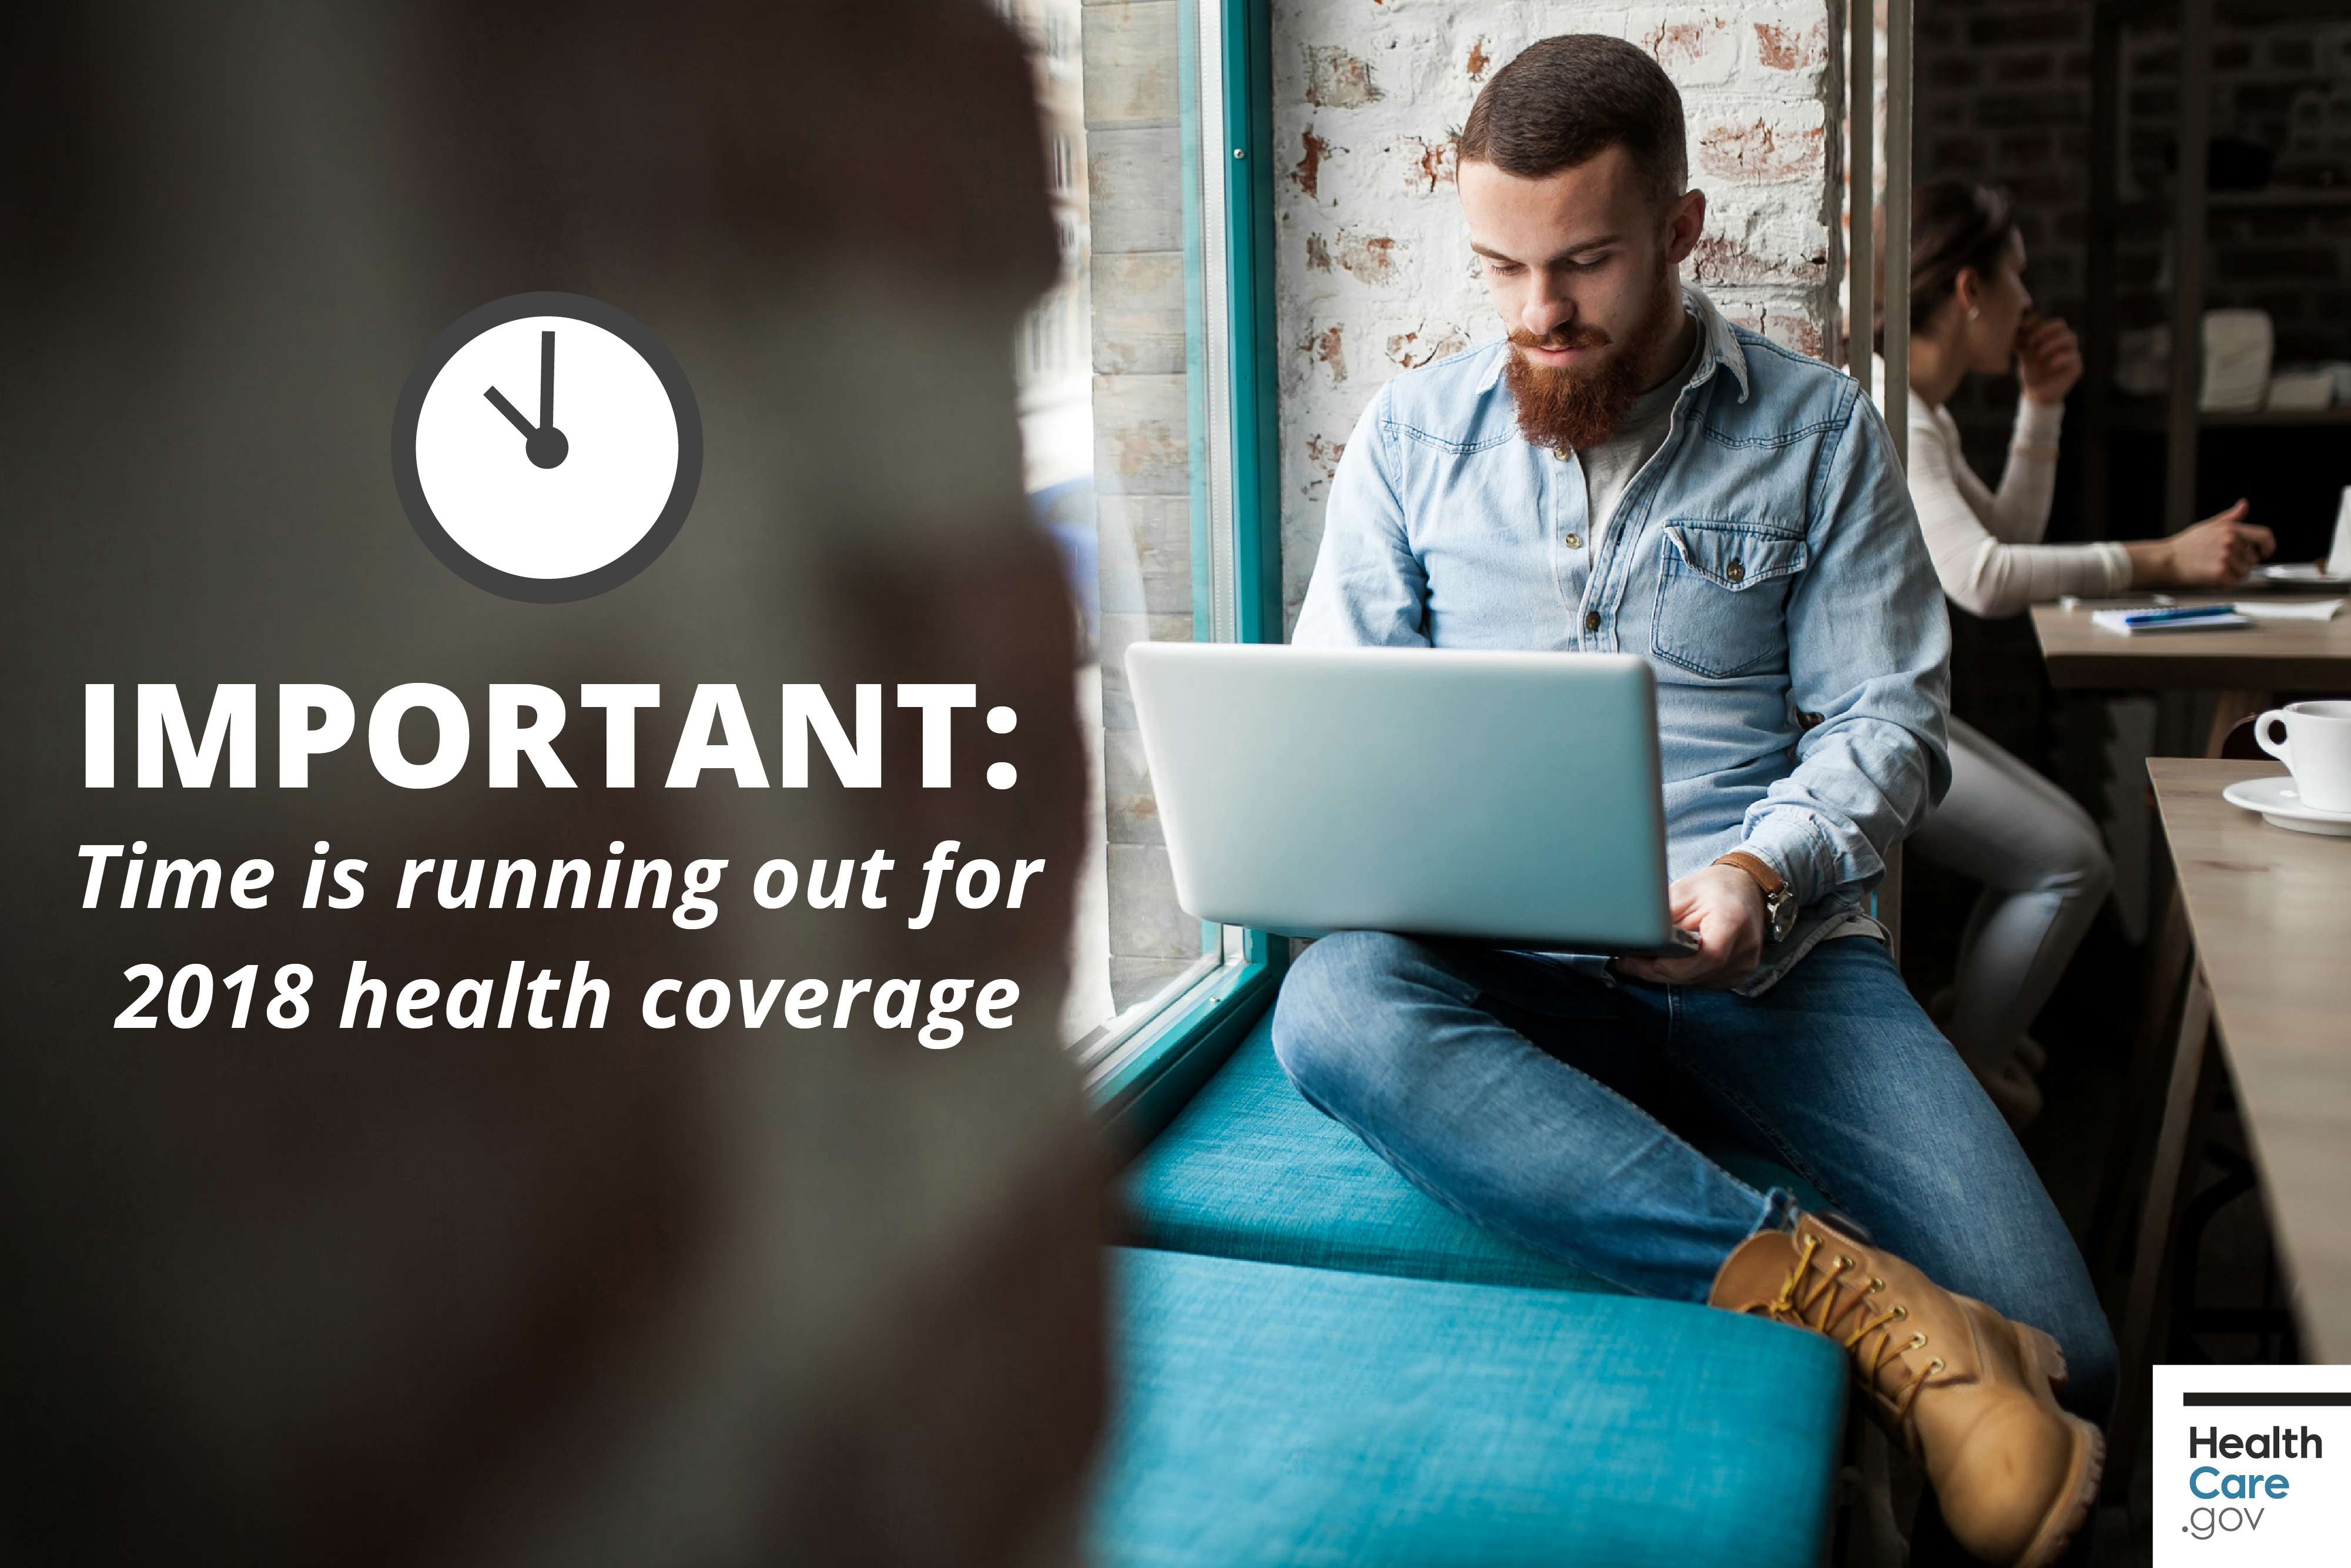 Image: Important: Time is running out for 2018 health coverage